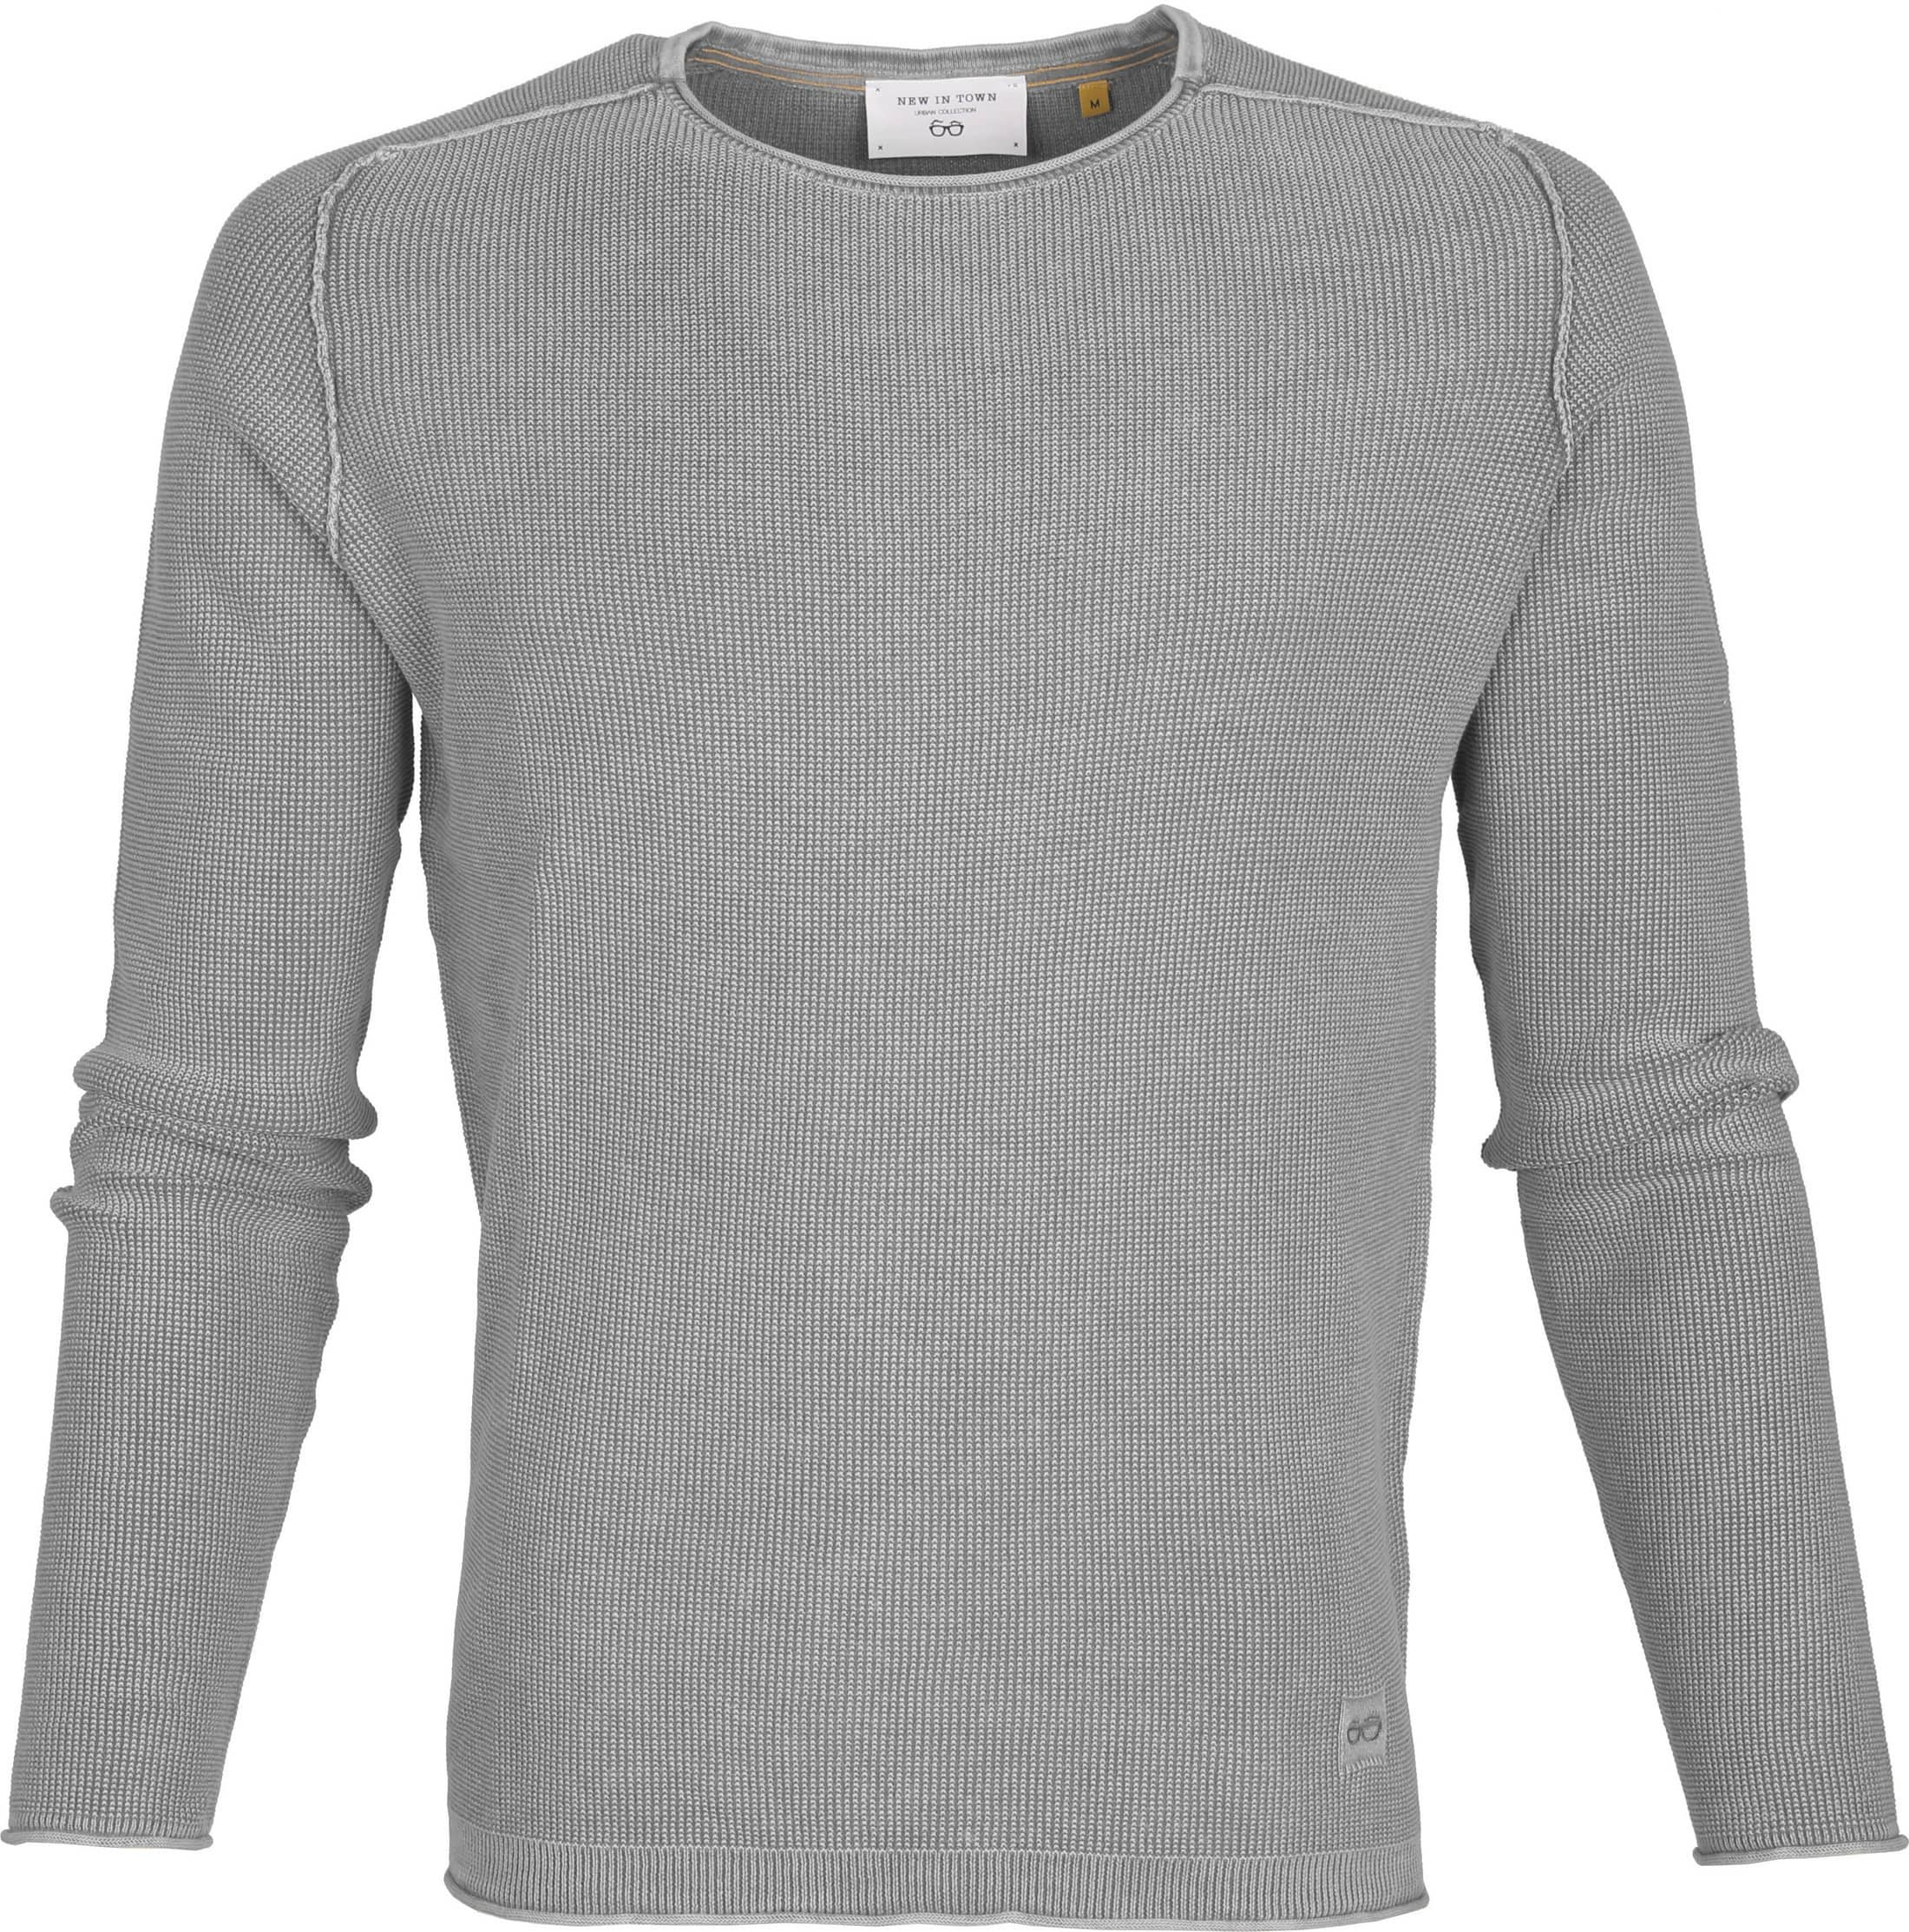 New In Town Sweater Strick Grau foto 0